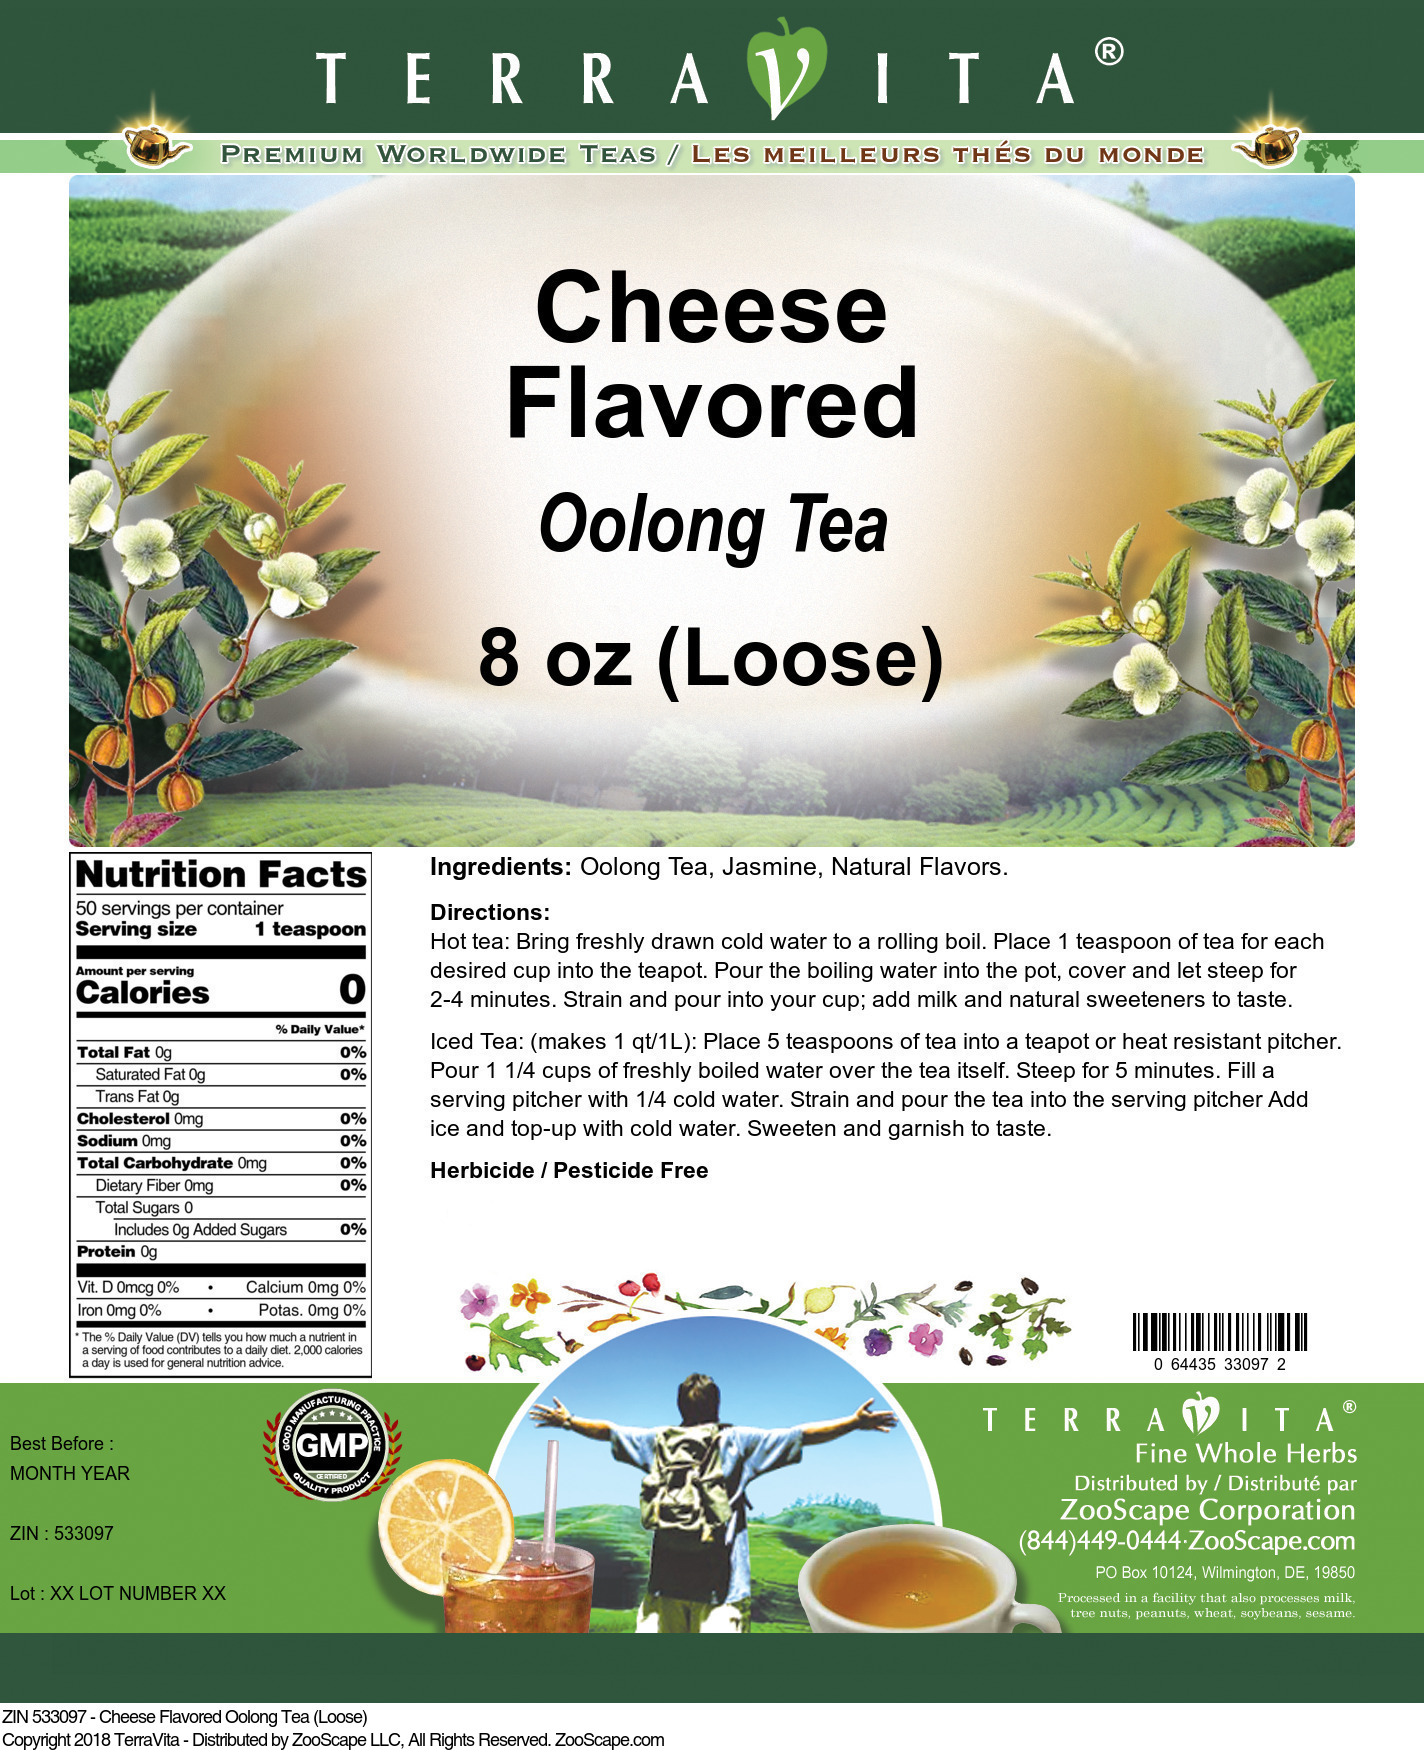 Cheese Flavored Oolong Tea